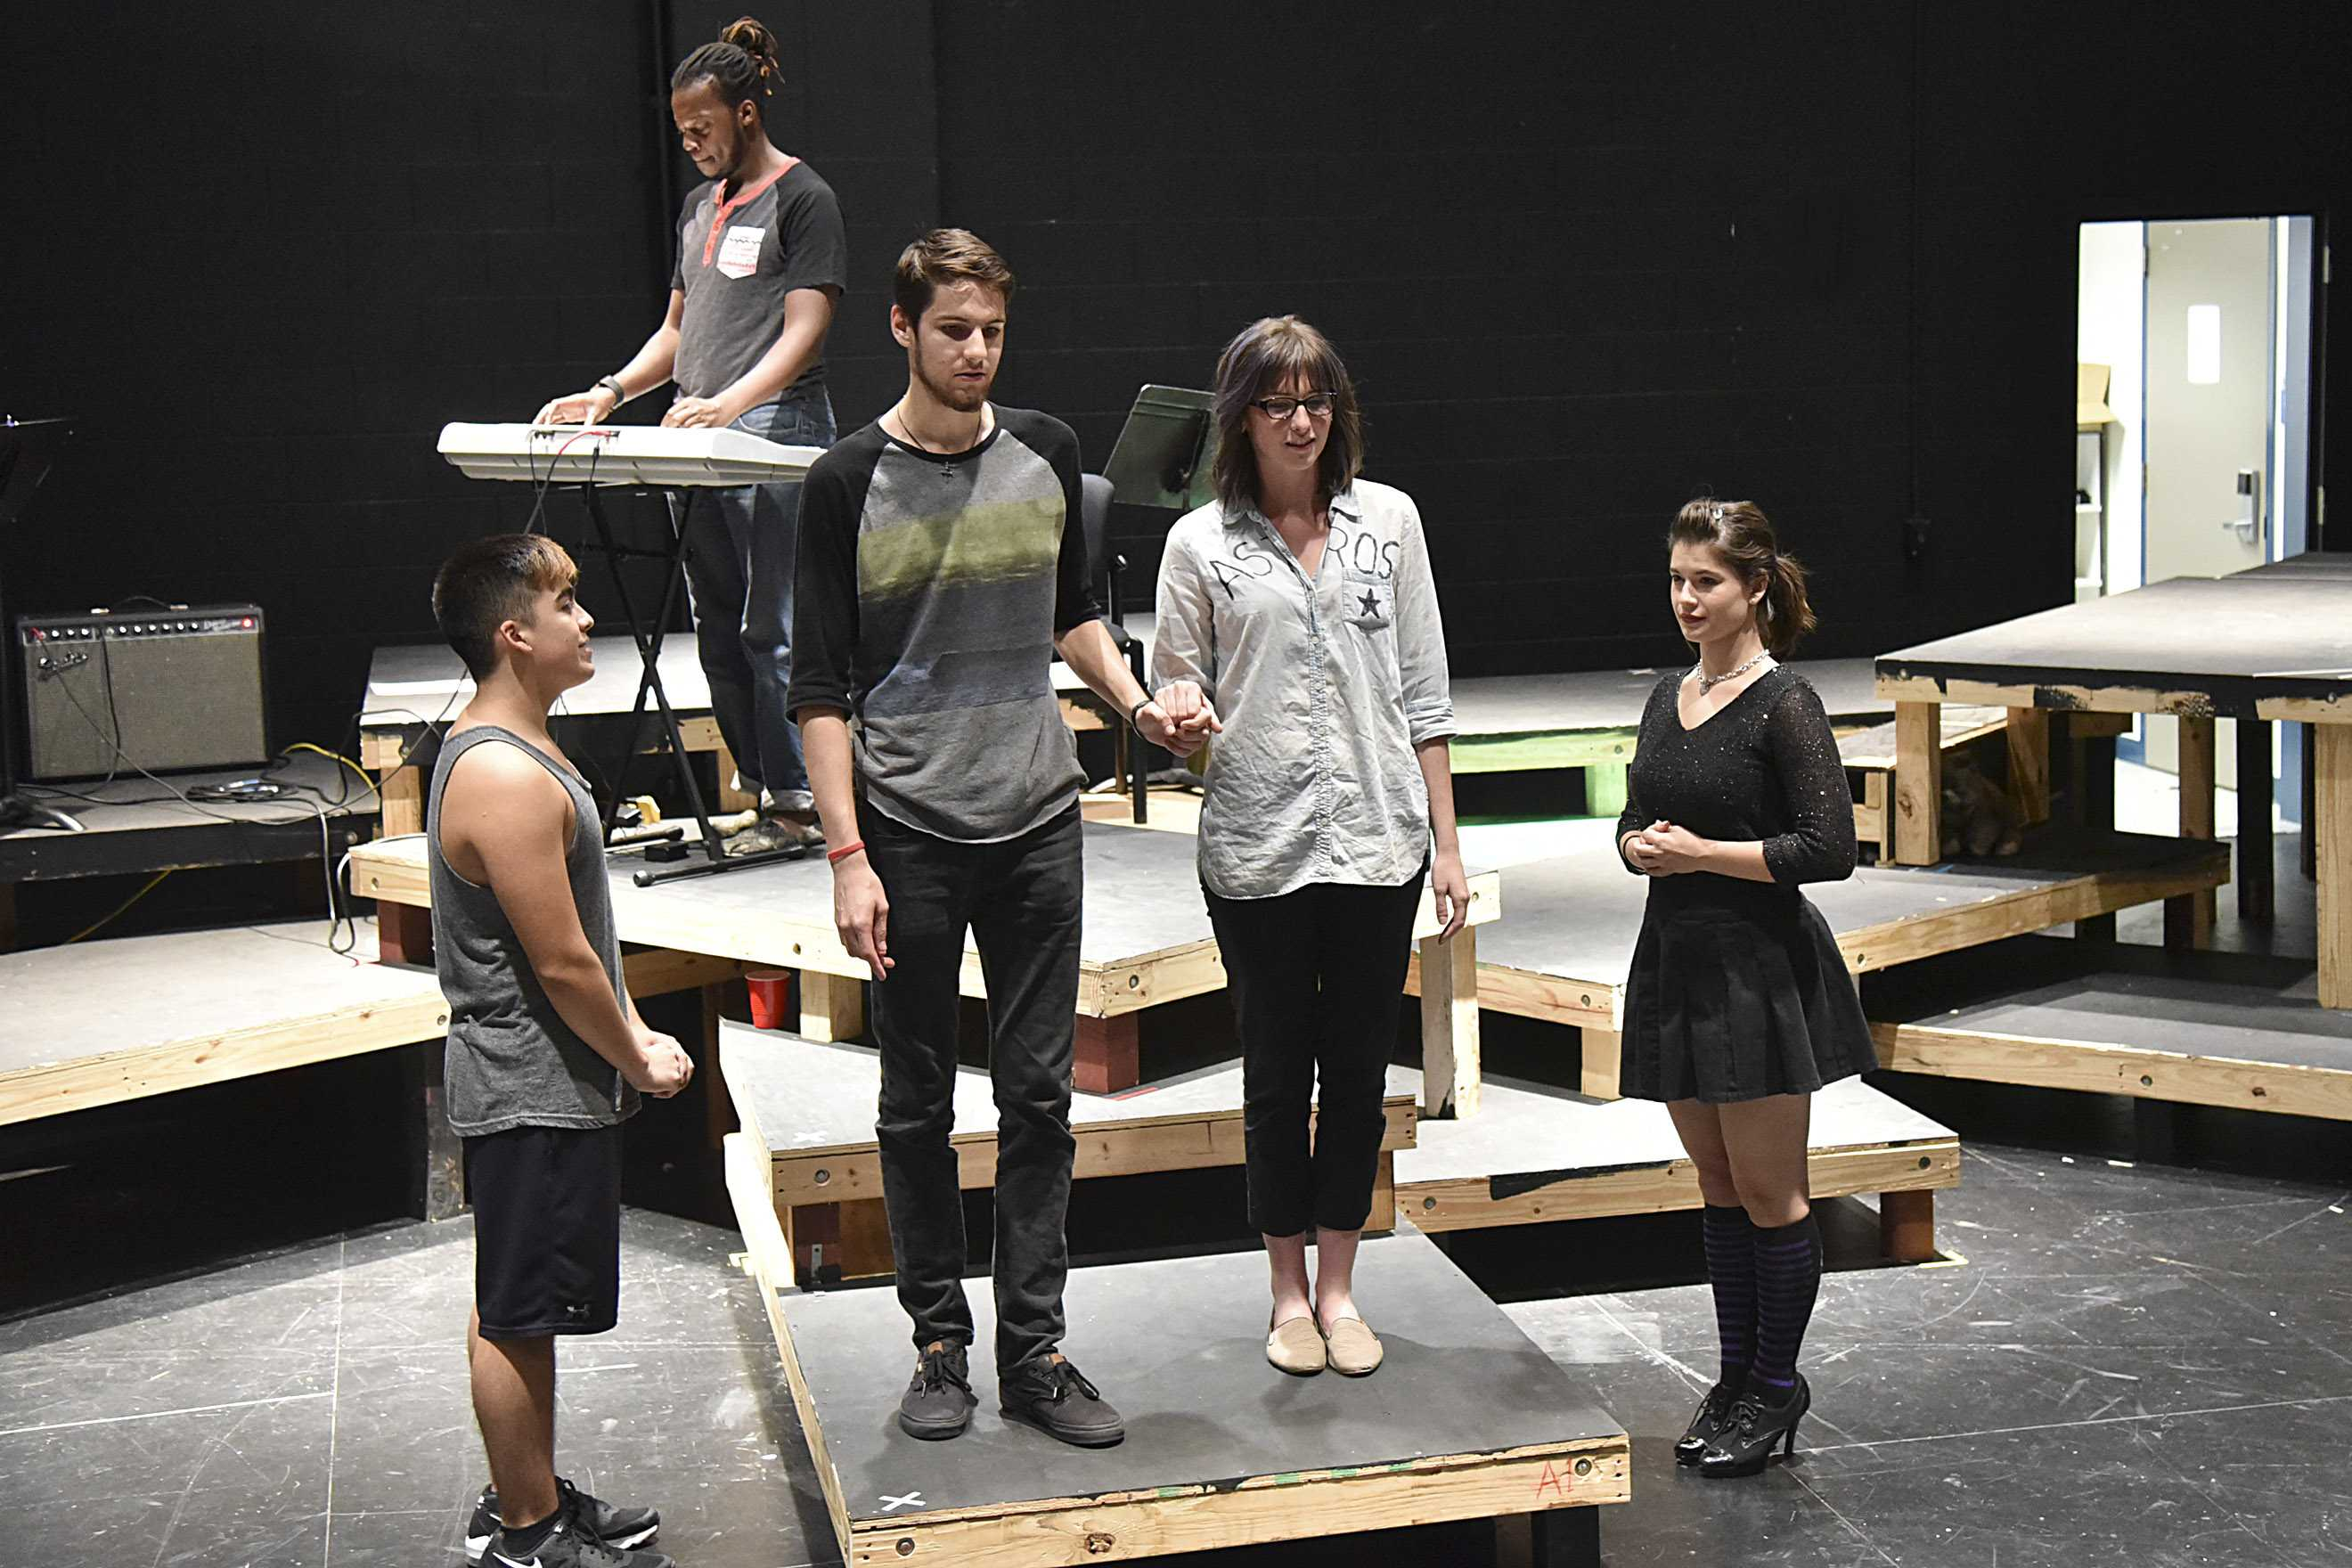 Cast members rehearse a scene from 'United States.'  The show is an original collaboration by the South campus theater program.